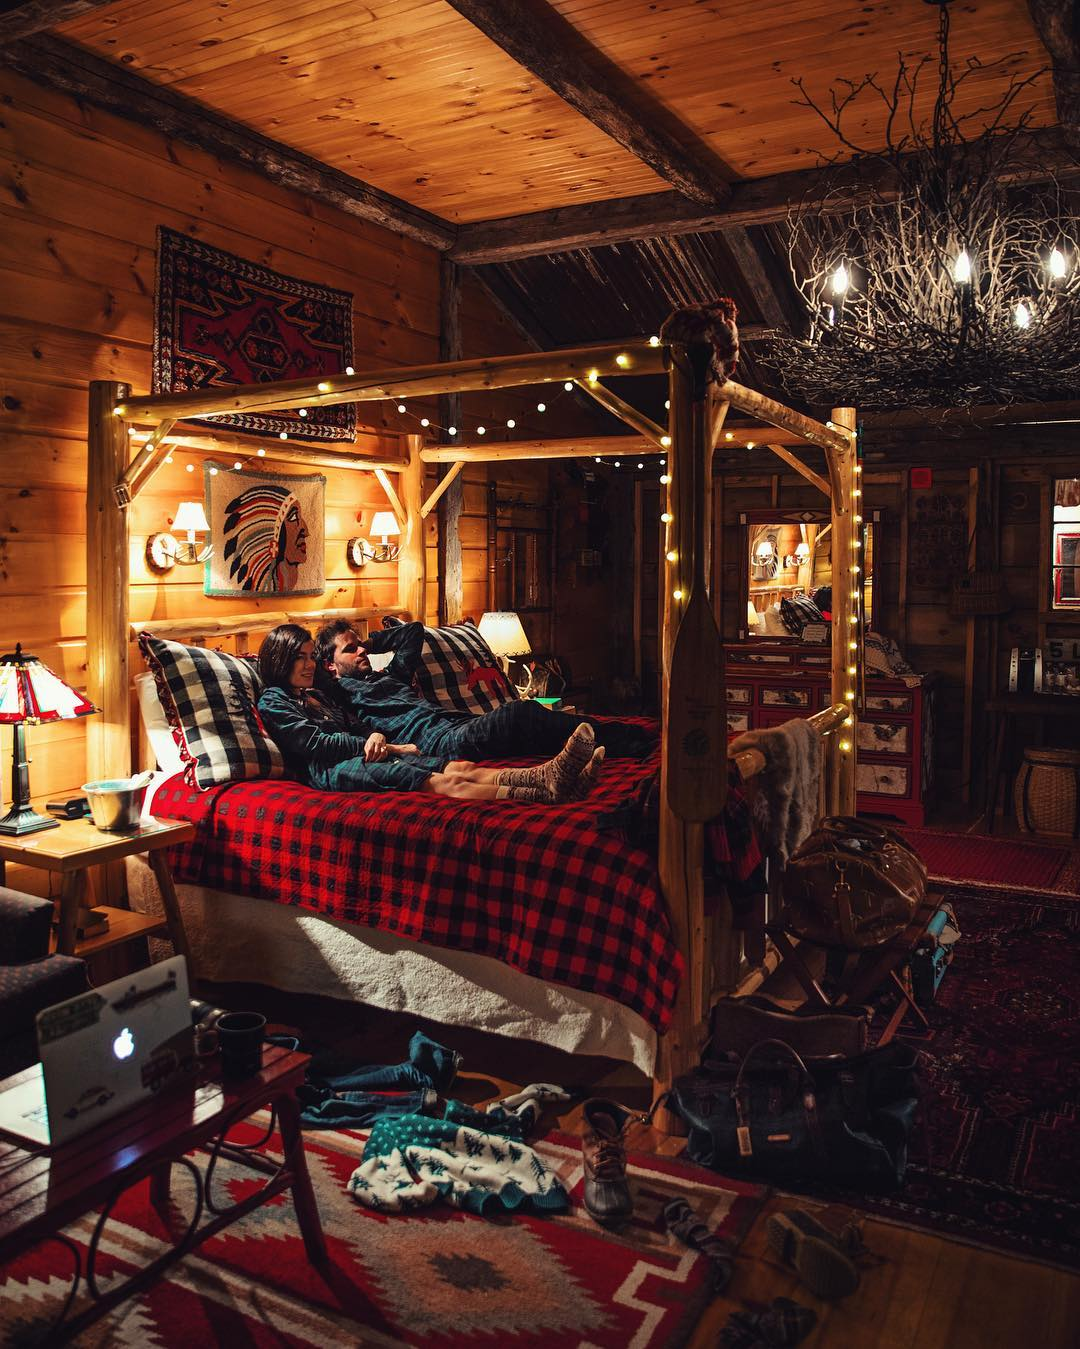 Log Home Decor: 27 Log Cabin Interior Design Ideas